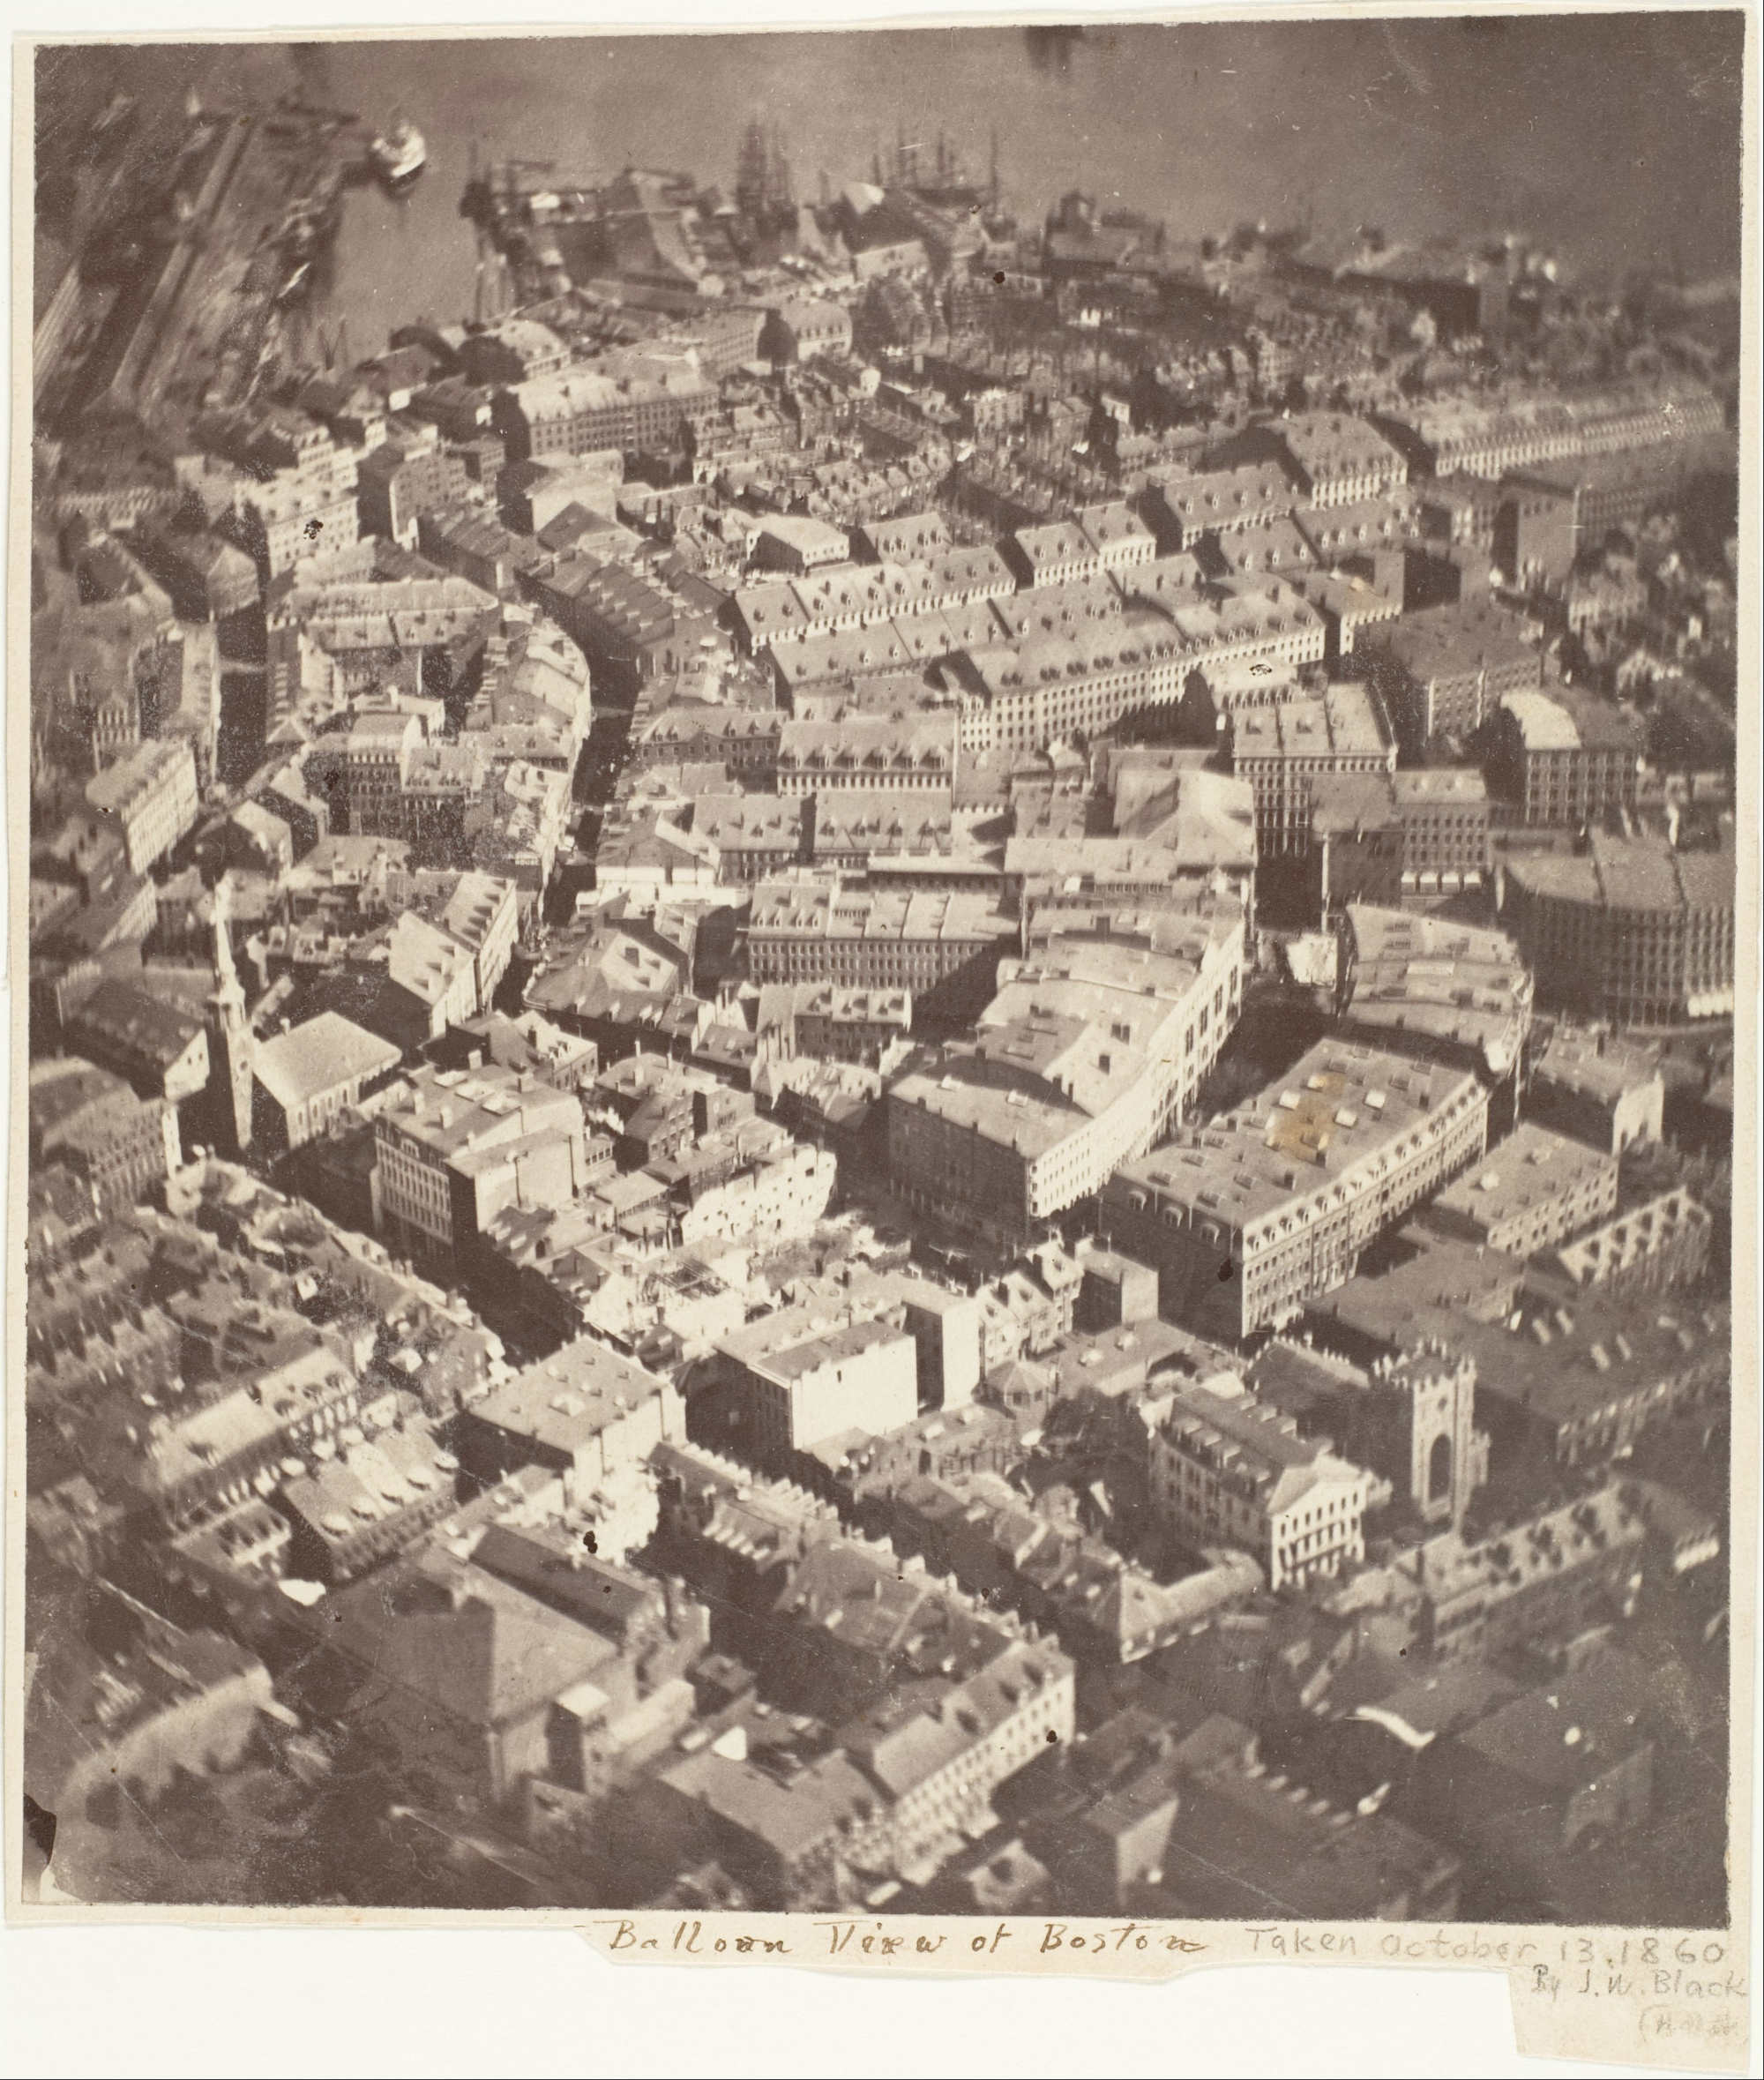 boston1860 image